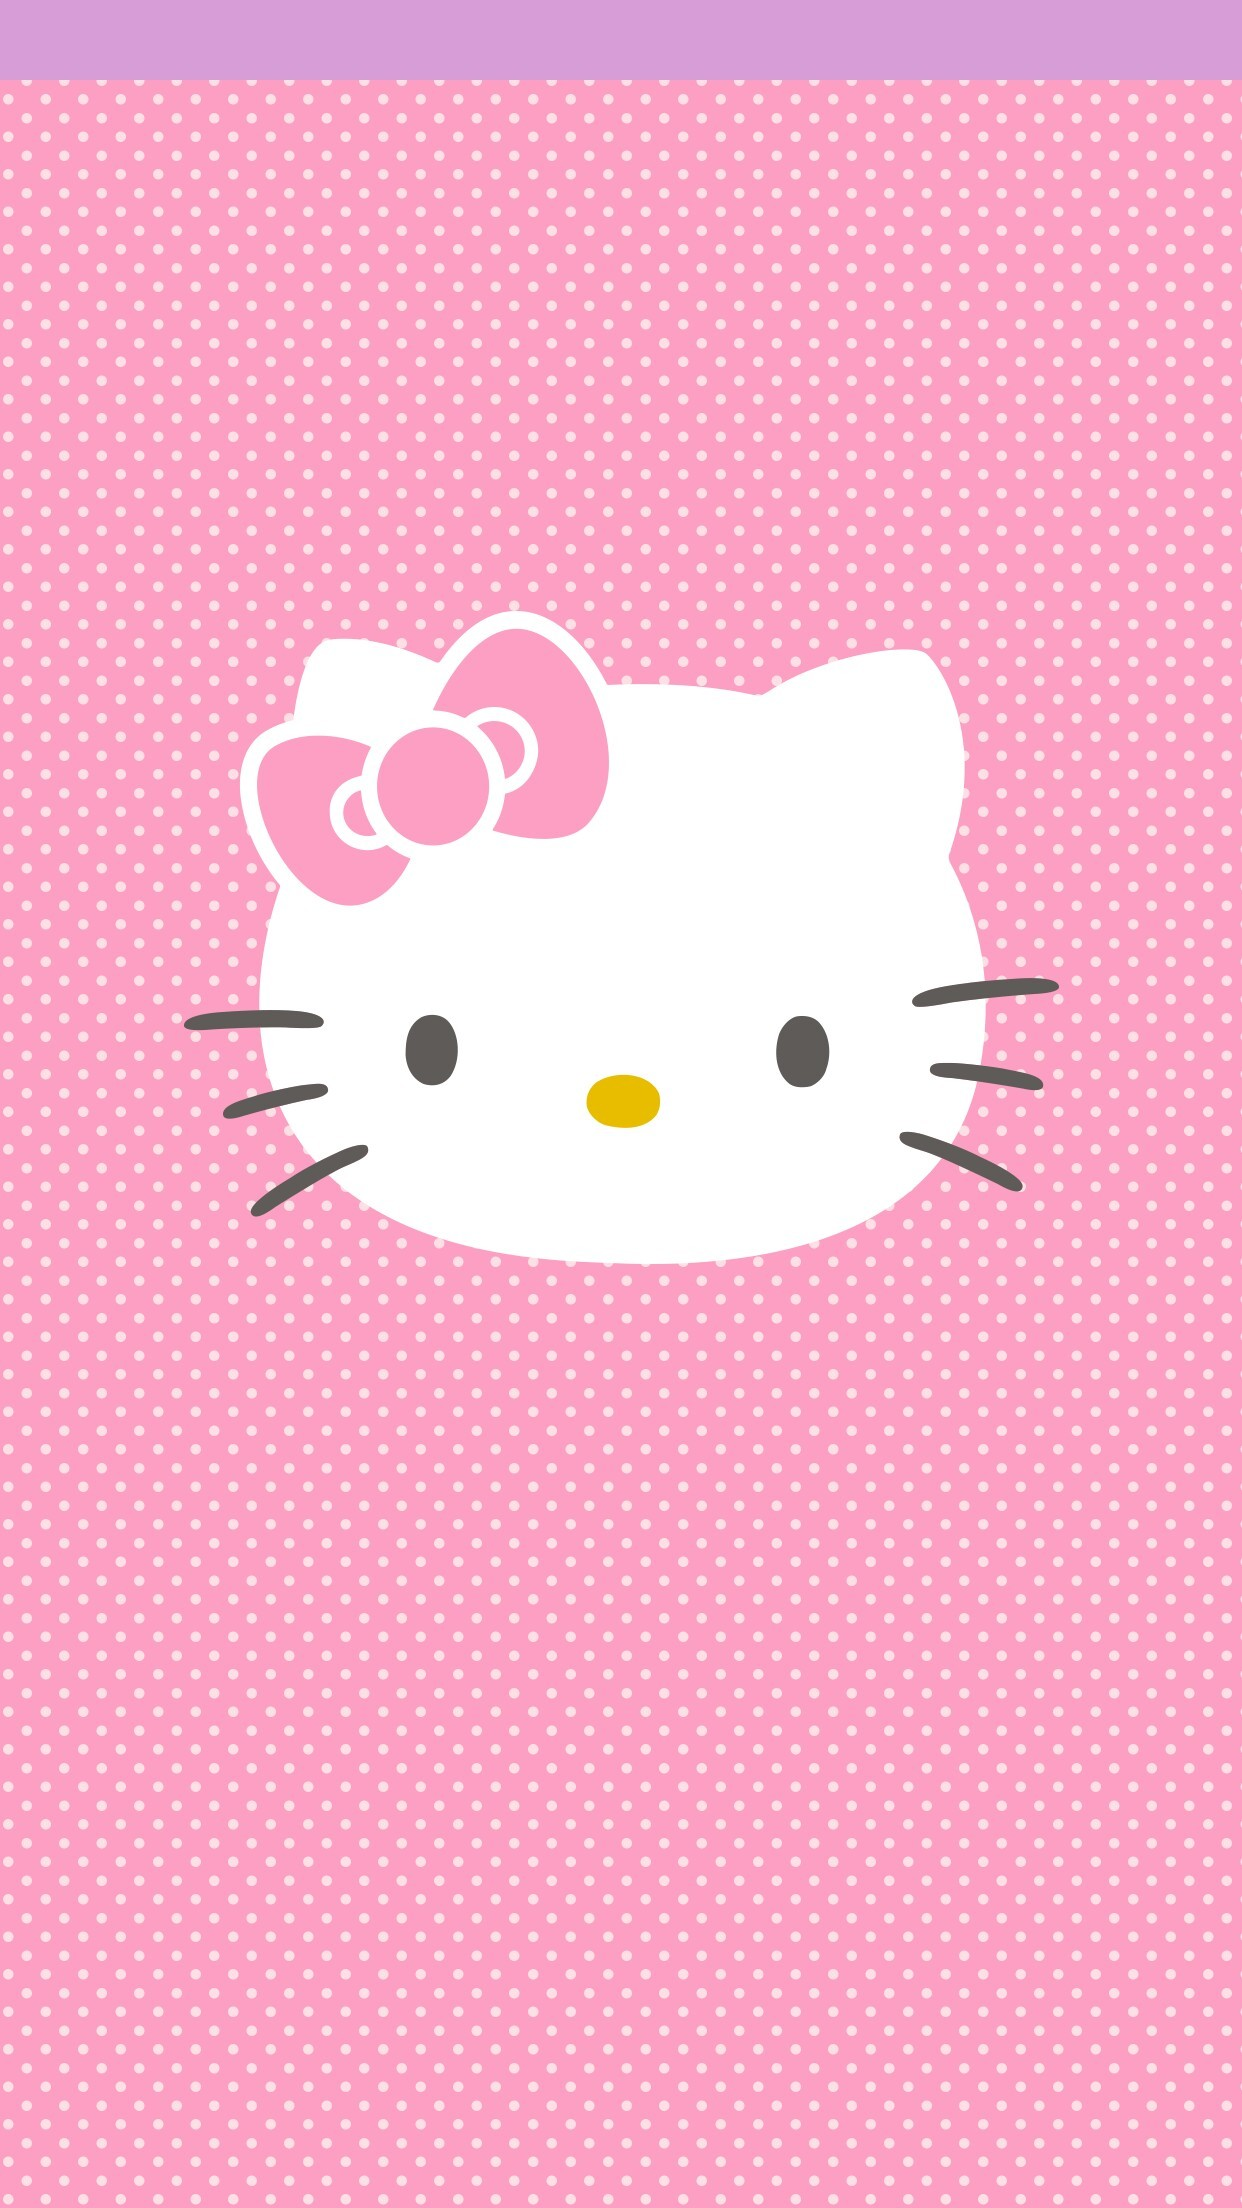 1242x2208 Hello Kitty Wallpaper Backgrounds Sanrio Iphone Wallpapers 5s Owl Funds Paper